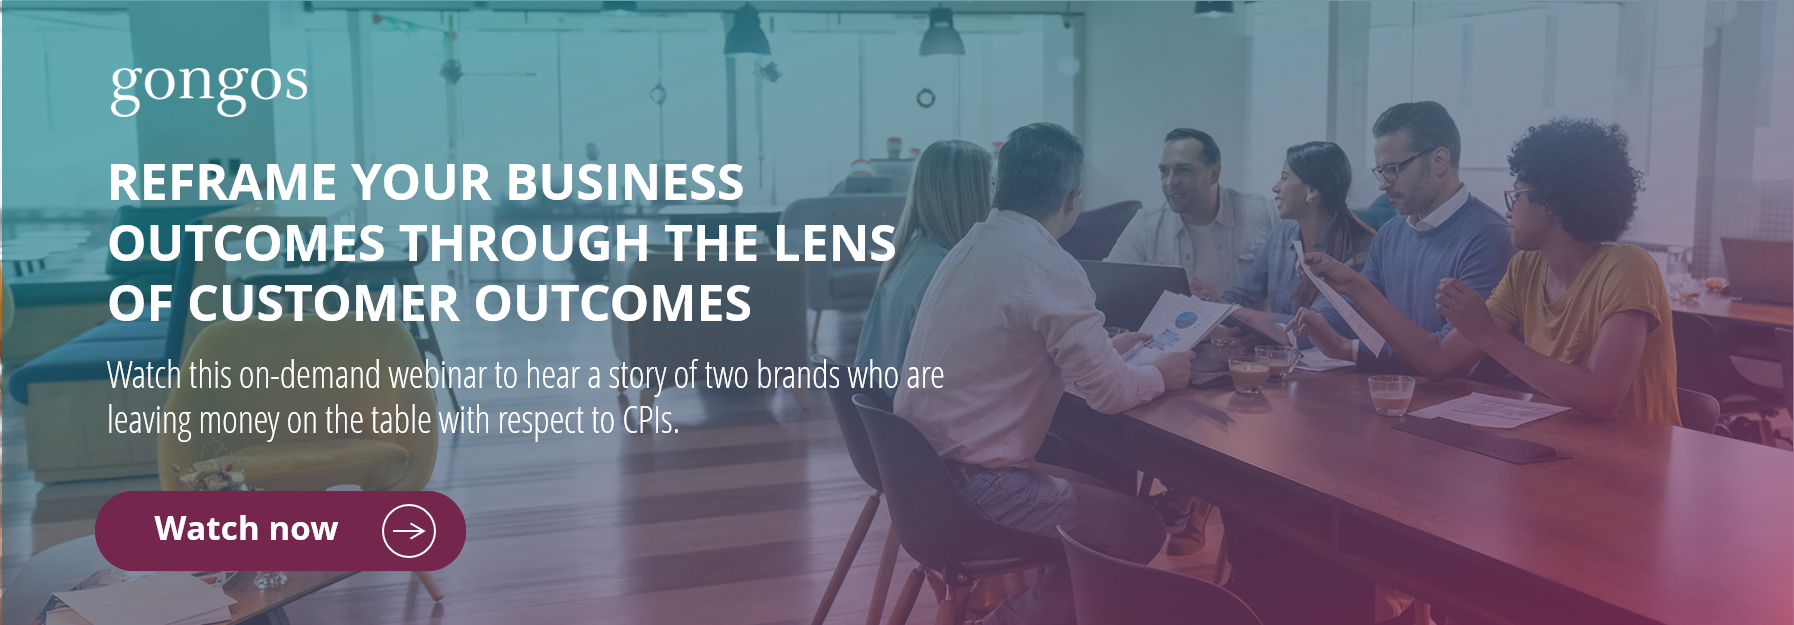 Reframe Your Business Outcomes Through the Lens of Customer Outcomes